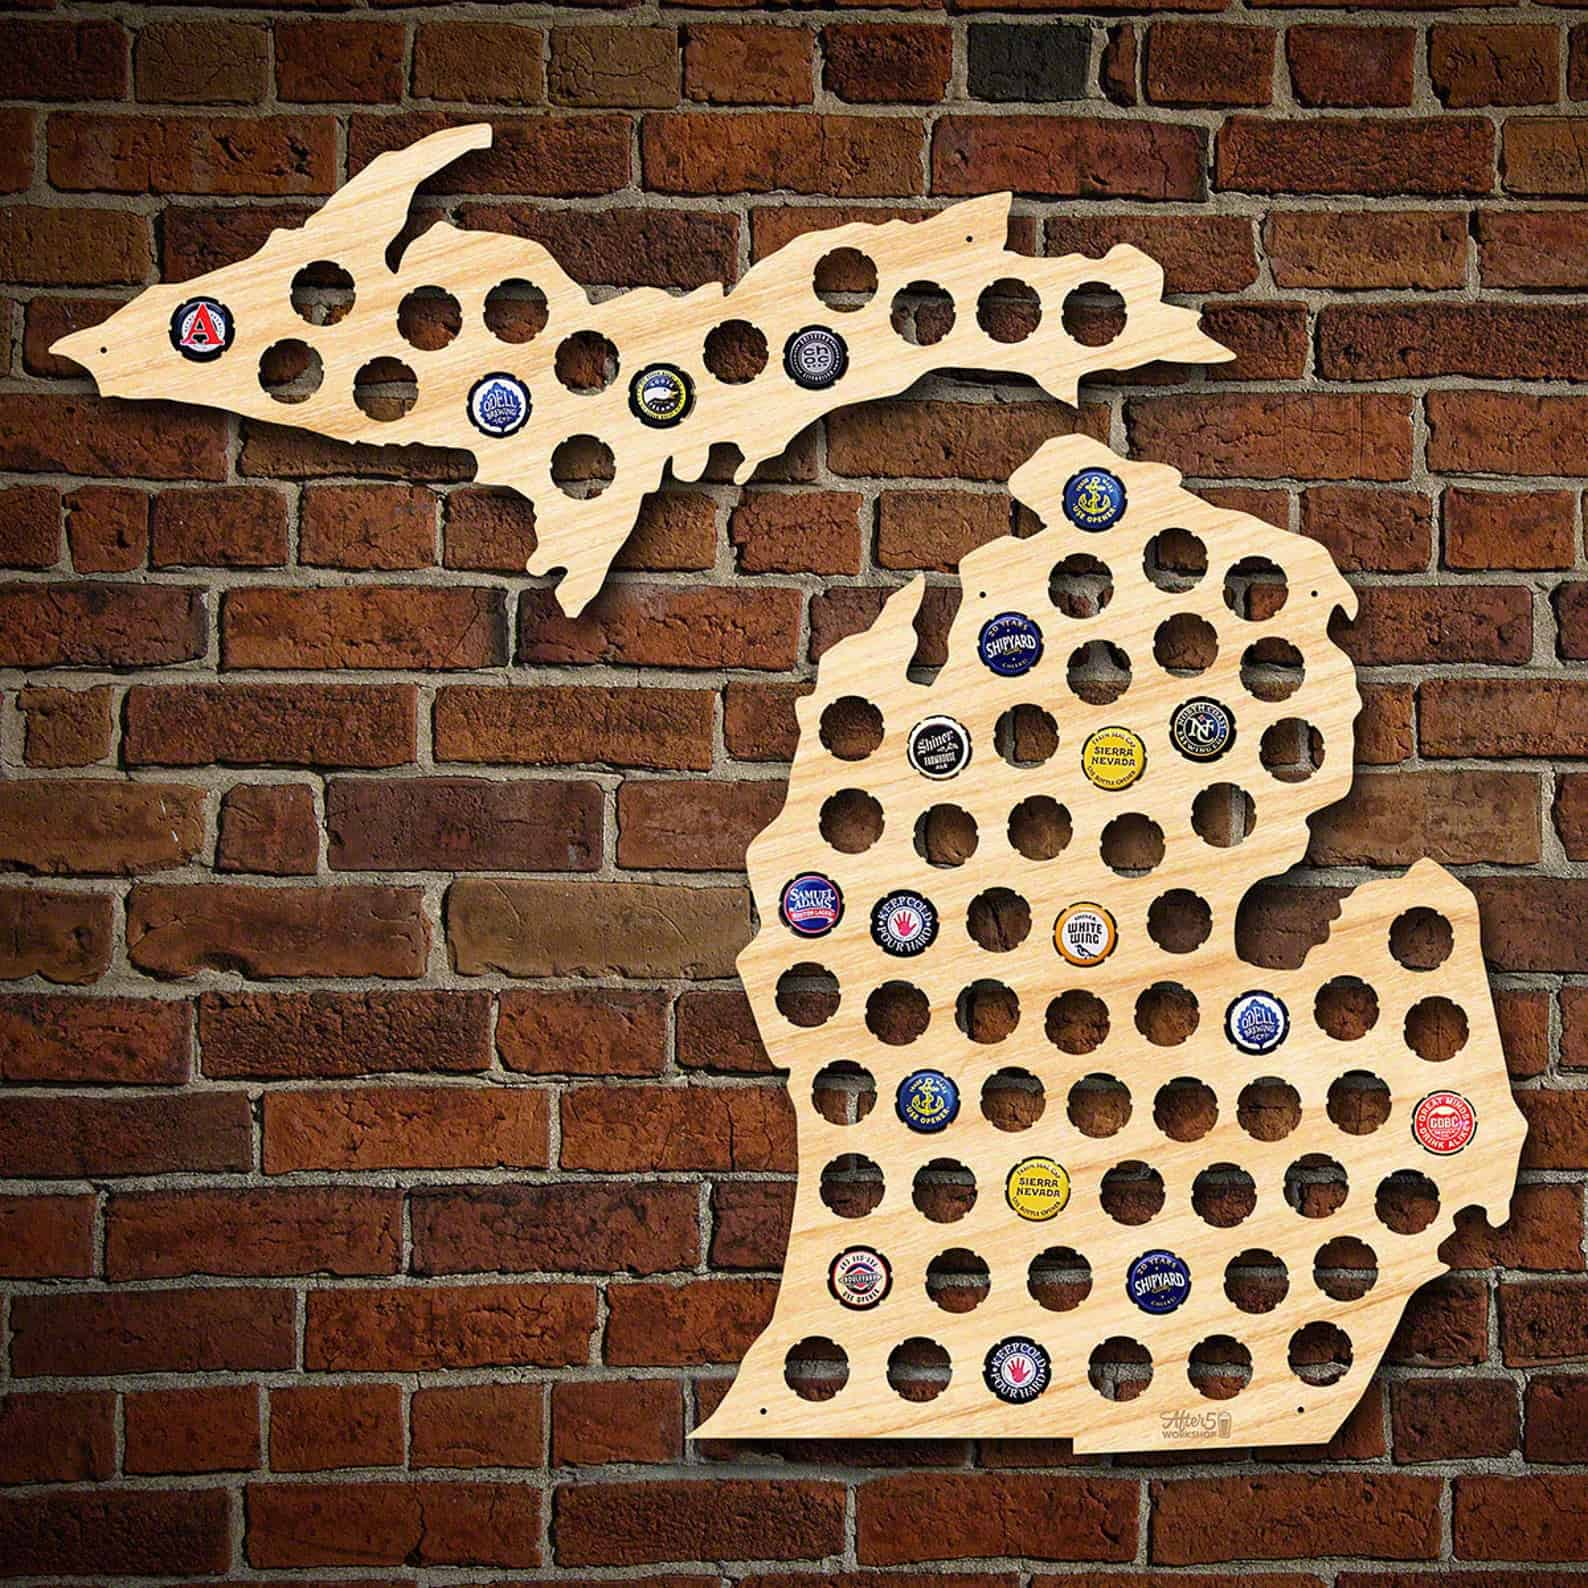 Michigan Beer Cap Map - an ultimate michigan gift idea